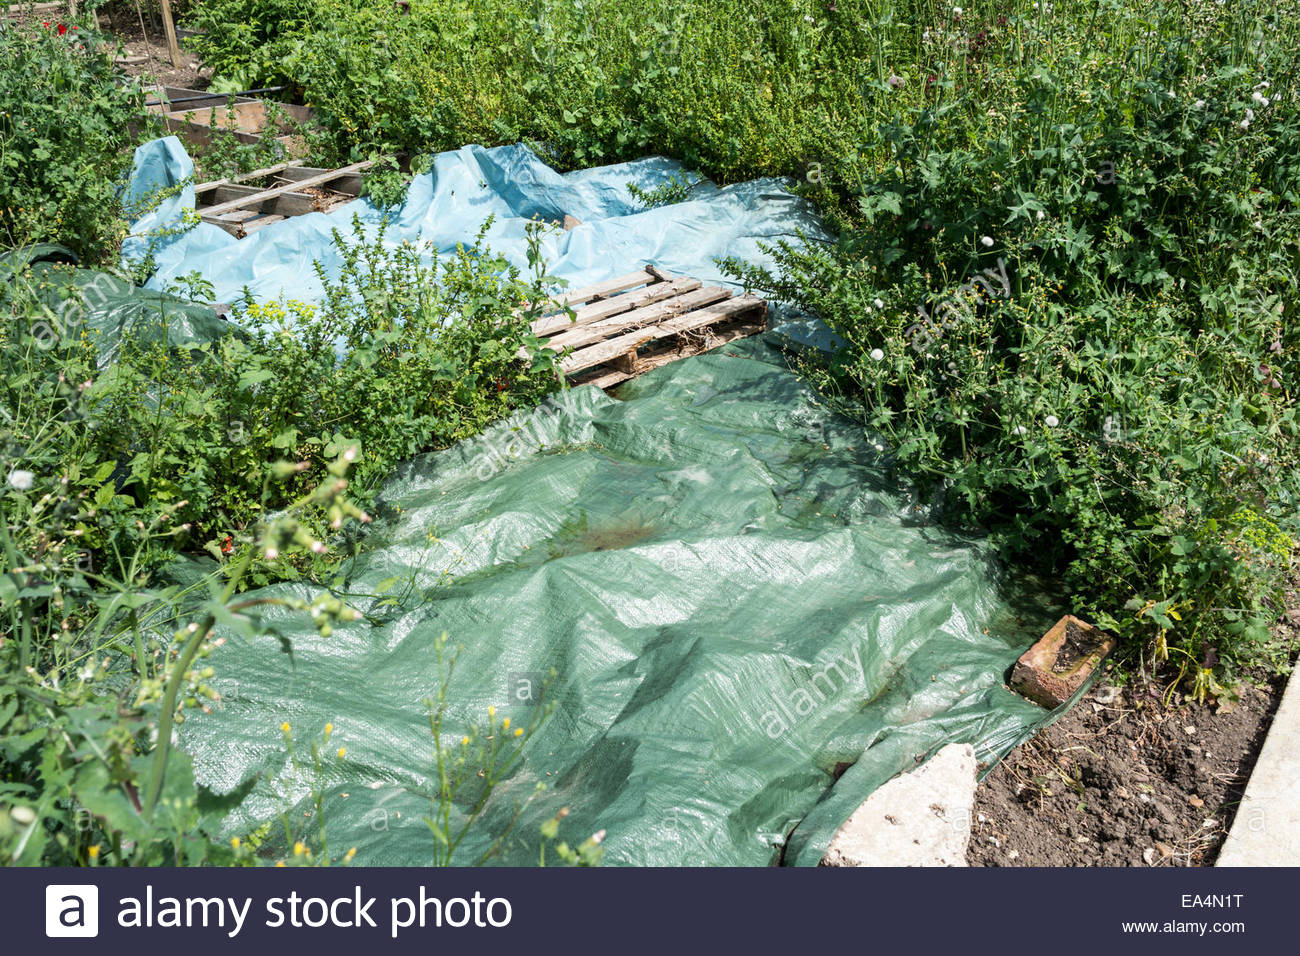 Plastic sheeting or tarpaulin being used as weed control on an allotment - Stock Image